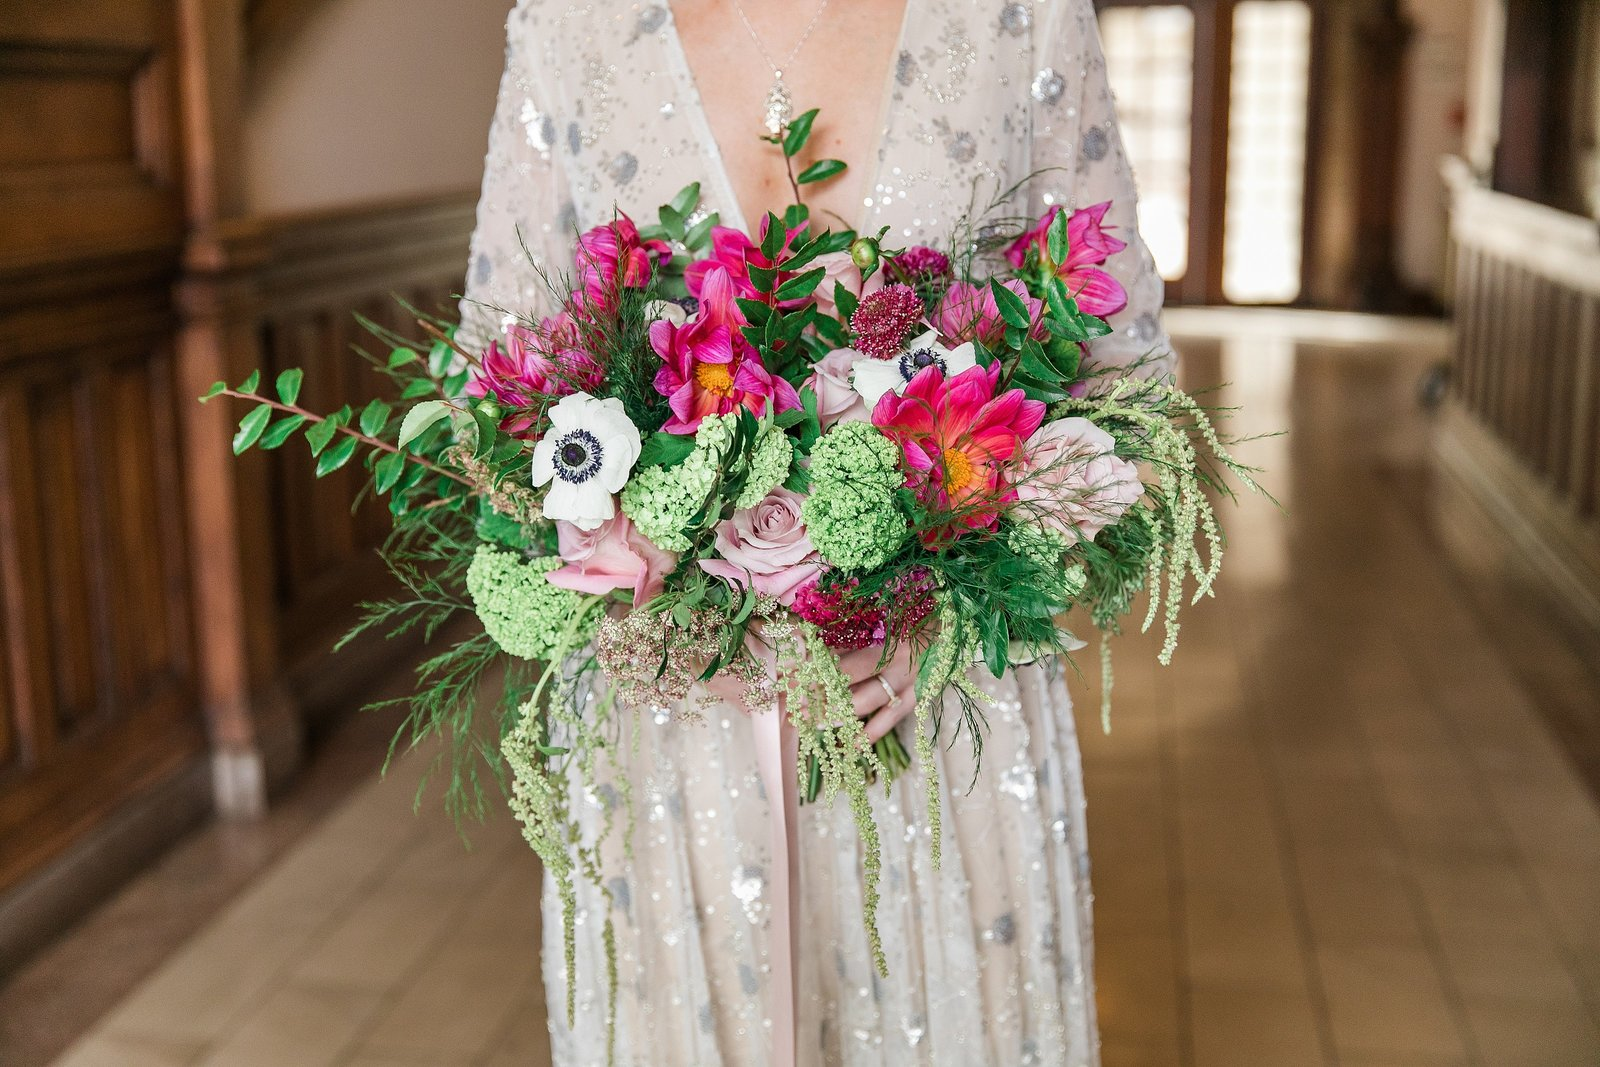 beaded-wedding-dress-vibrant-floral-bouquet